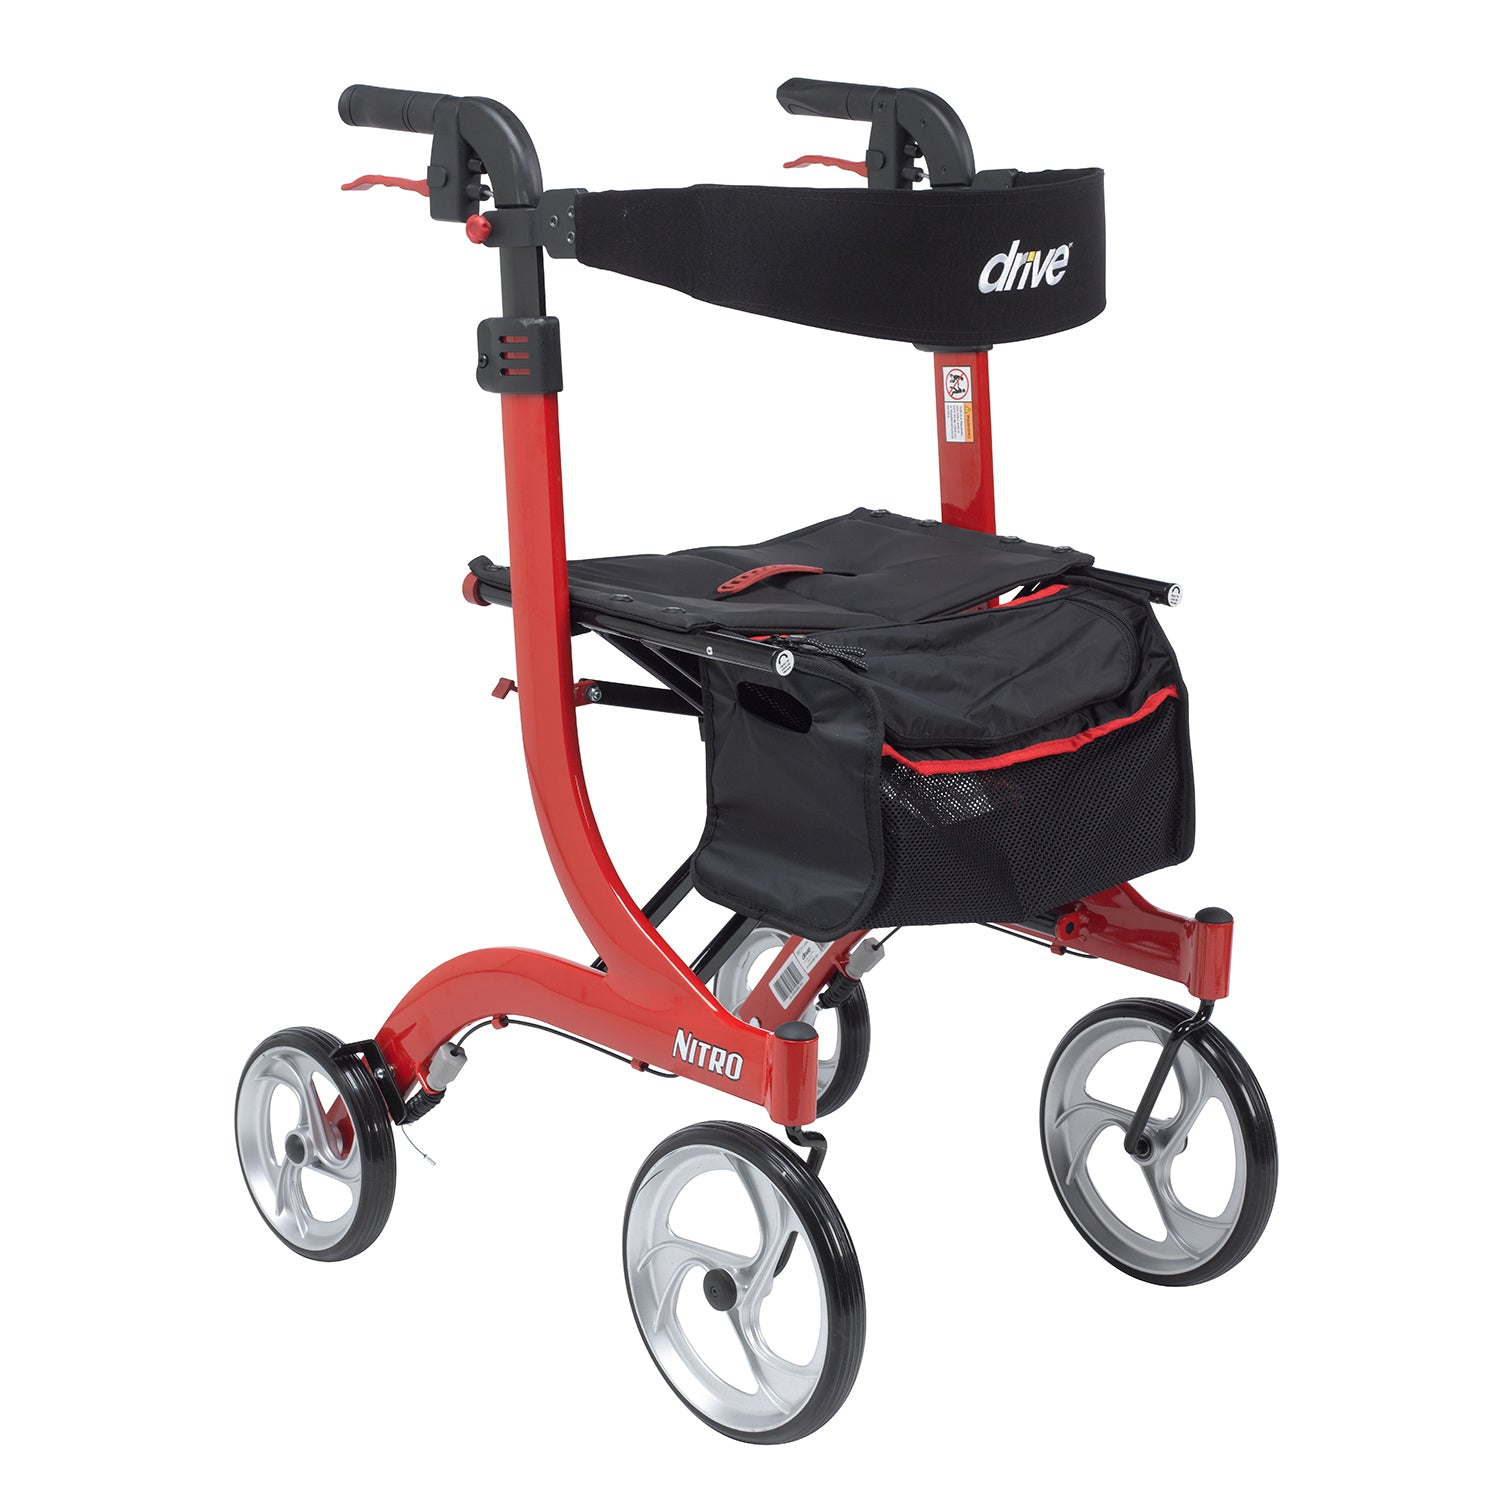 Drive Nitro 4 Wheel Rollator - Tall Height - Red